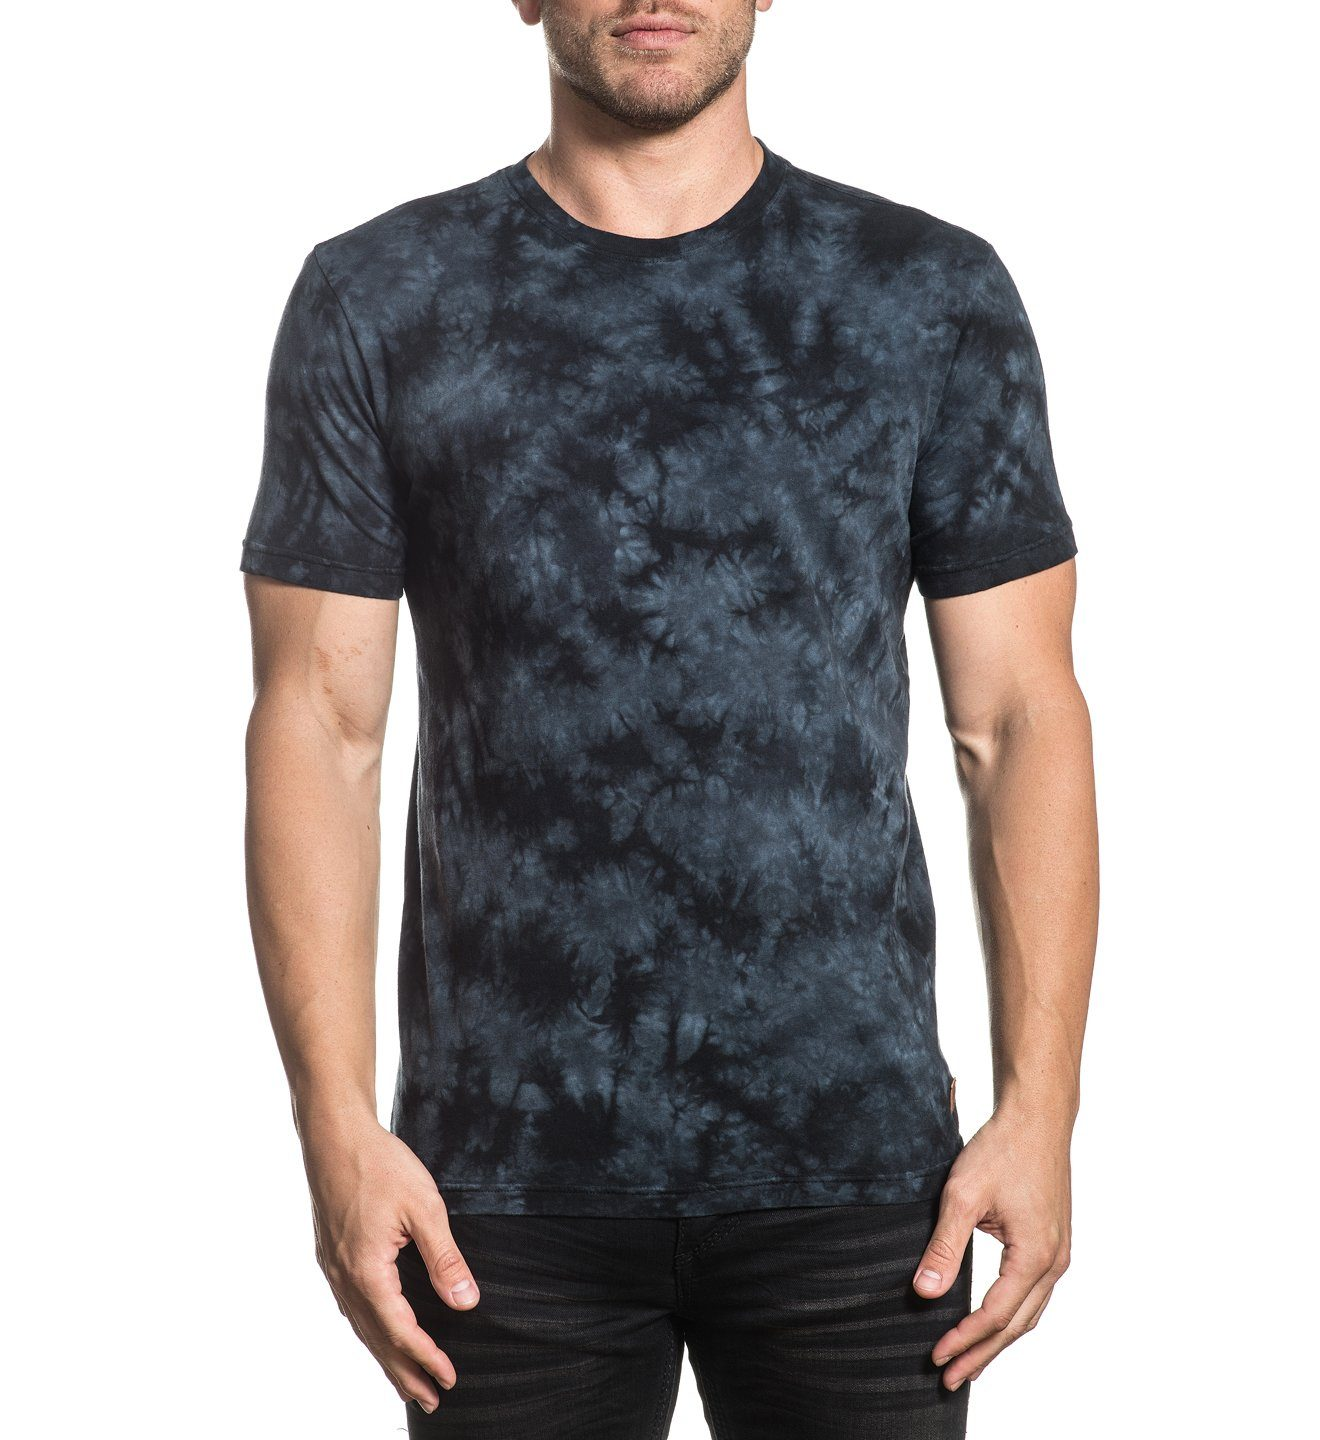 Mens Short Sleeve Tees - Standard Supply M-099